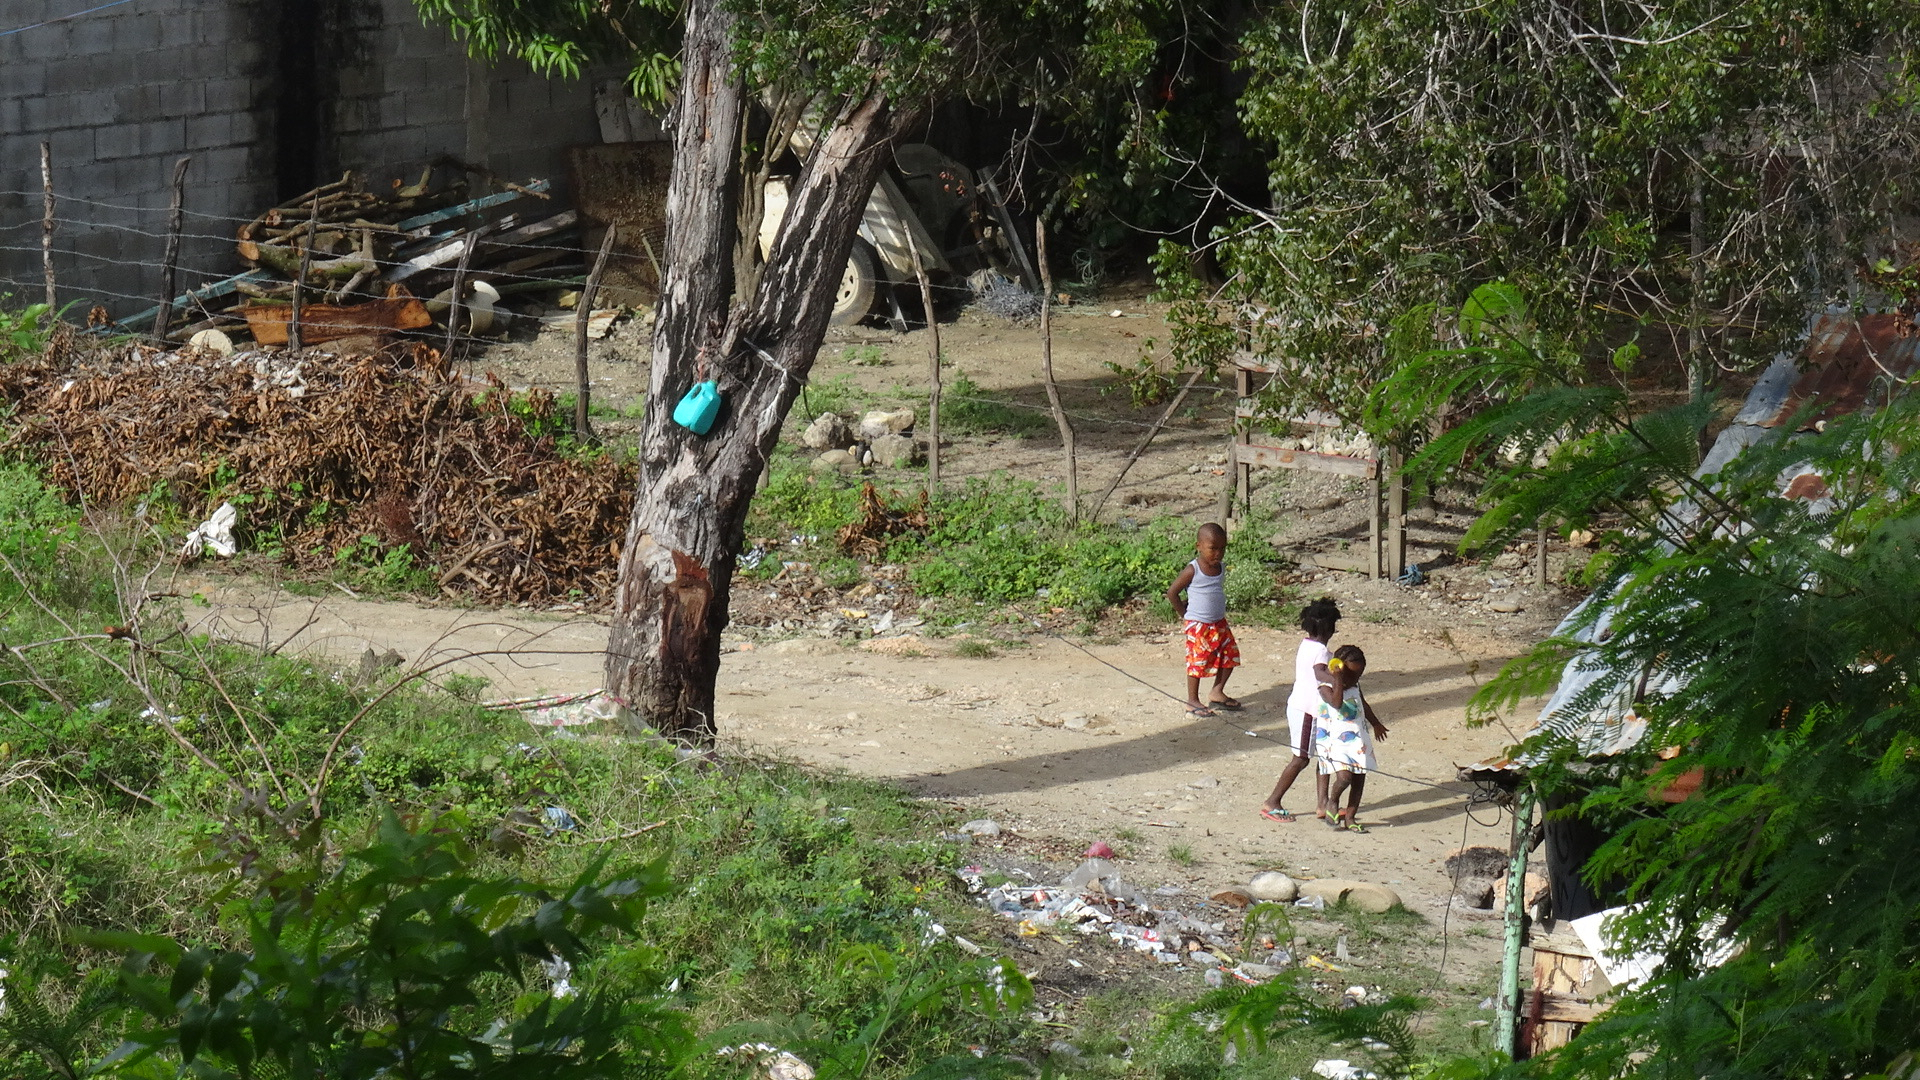 4. Children at play, Luperon